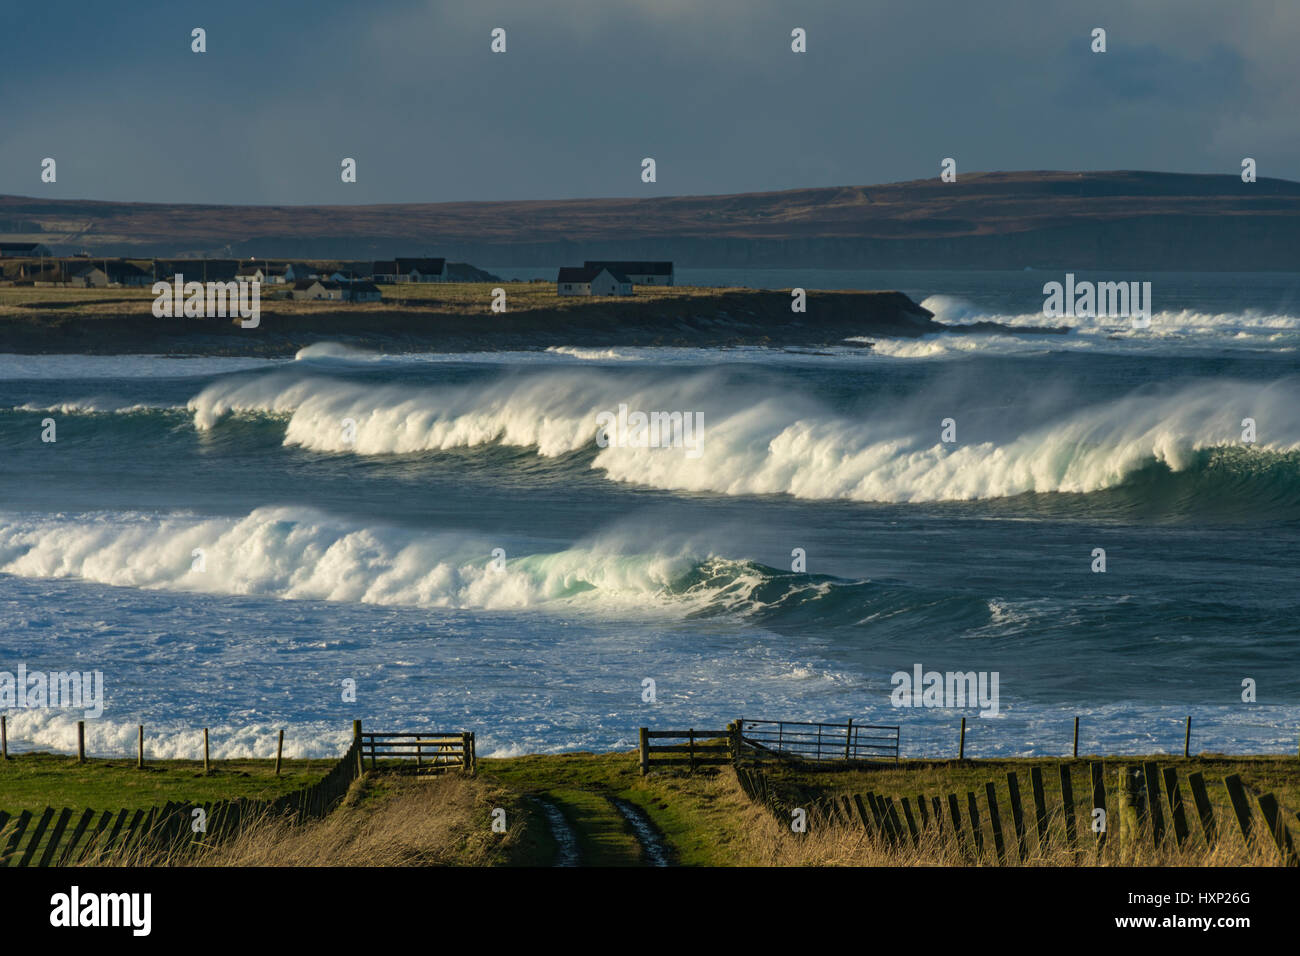 Large waves on the coast near the village of Mey, Caithness, Scotland, UK - Stock Image